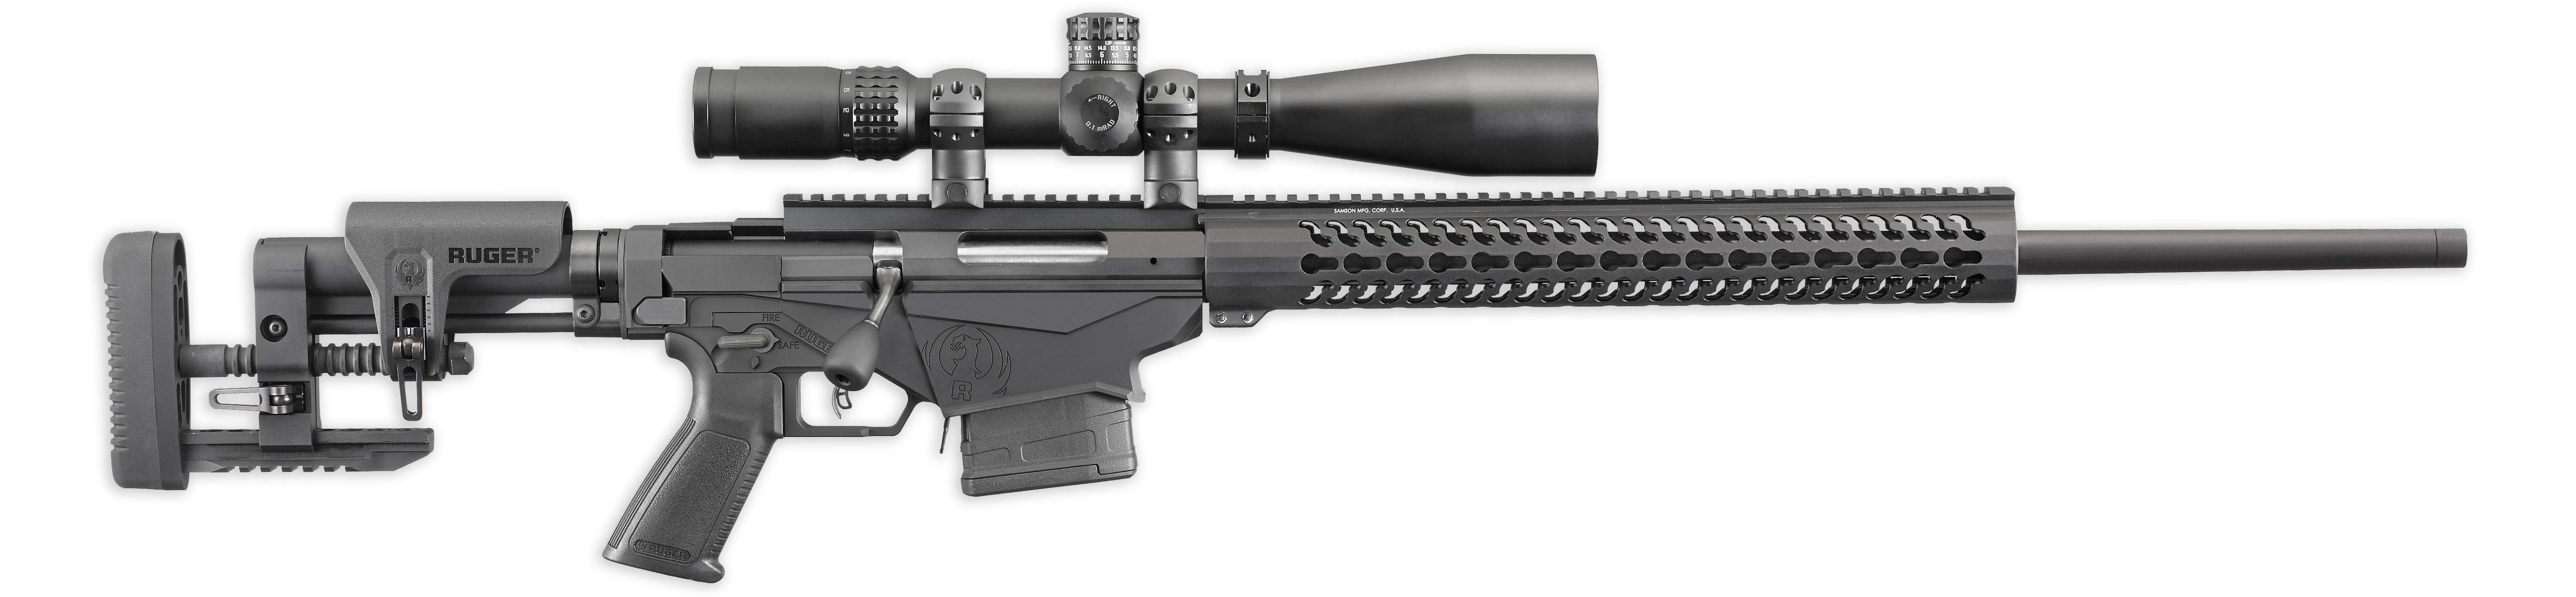 Ruger Precision Rifle Review: Part 2